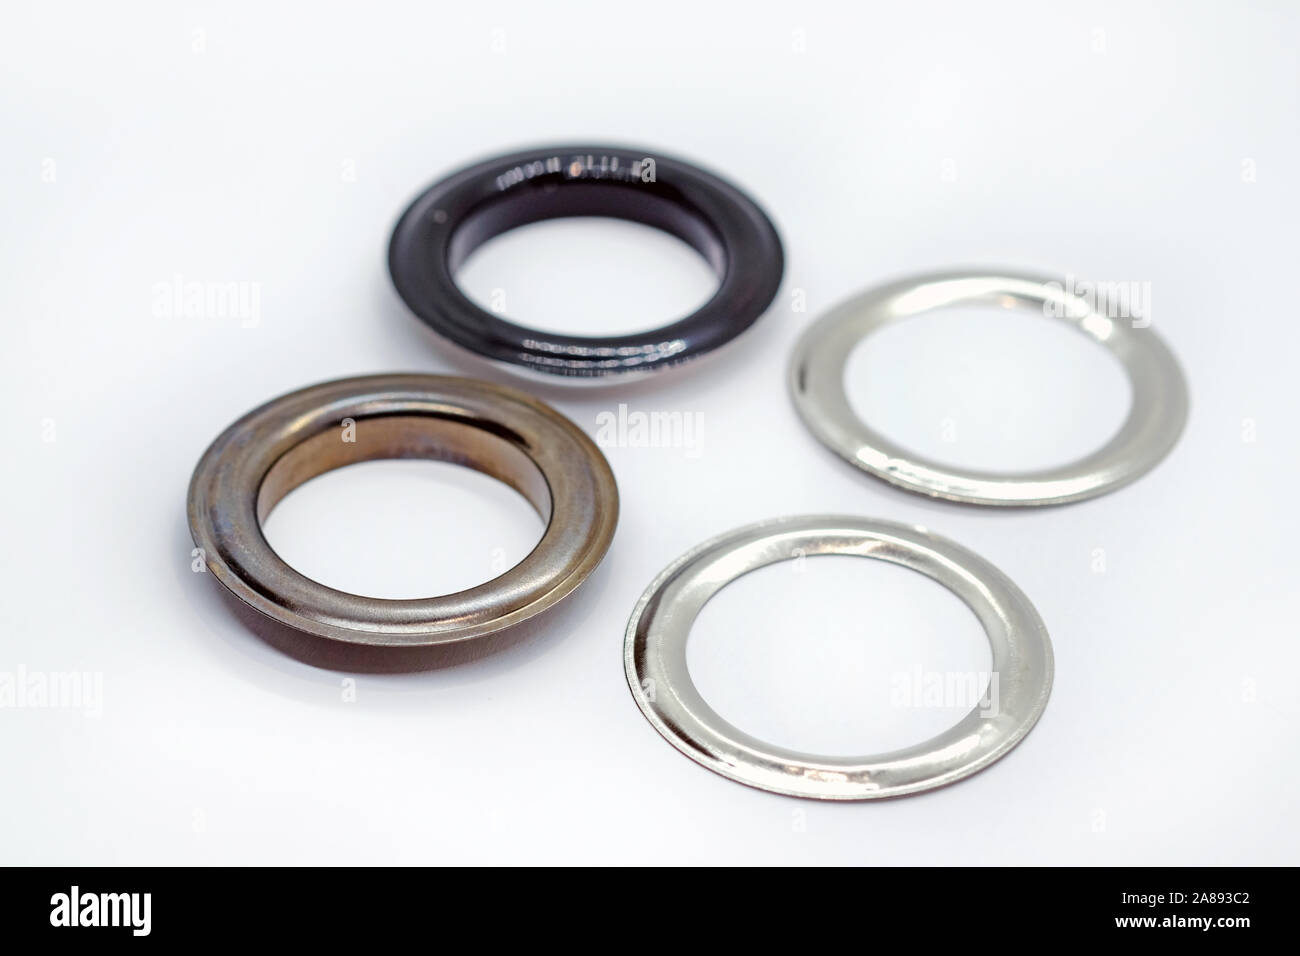 Metal Eyelets With Reverse Ring Dark Nickel And Black Lacquered Accessories For Clothes Shoes And Bags Metal Base For The Hole In Which The Cord I Stock Photo Alamy